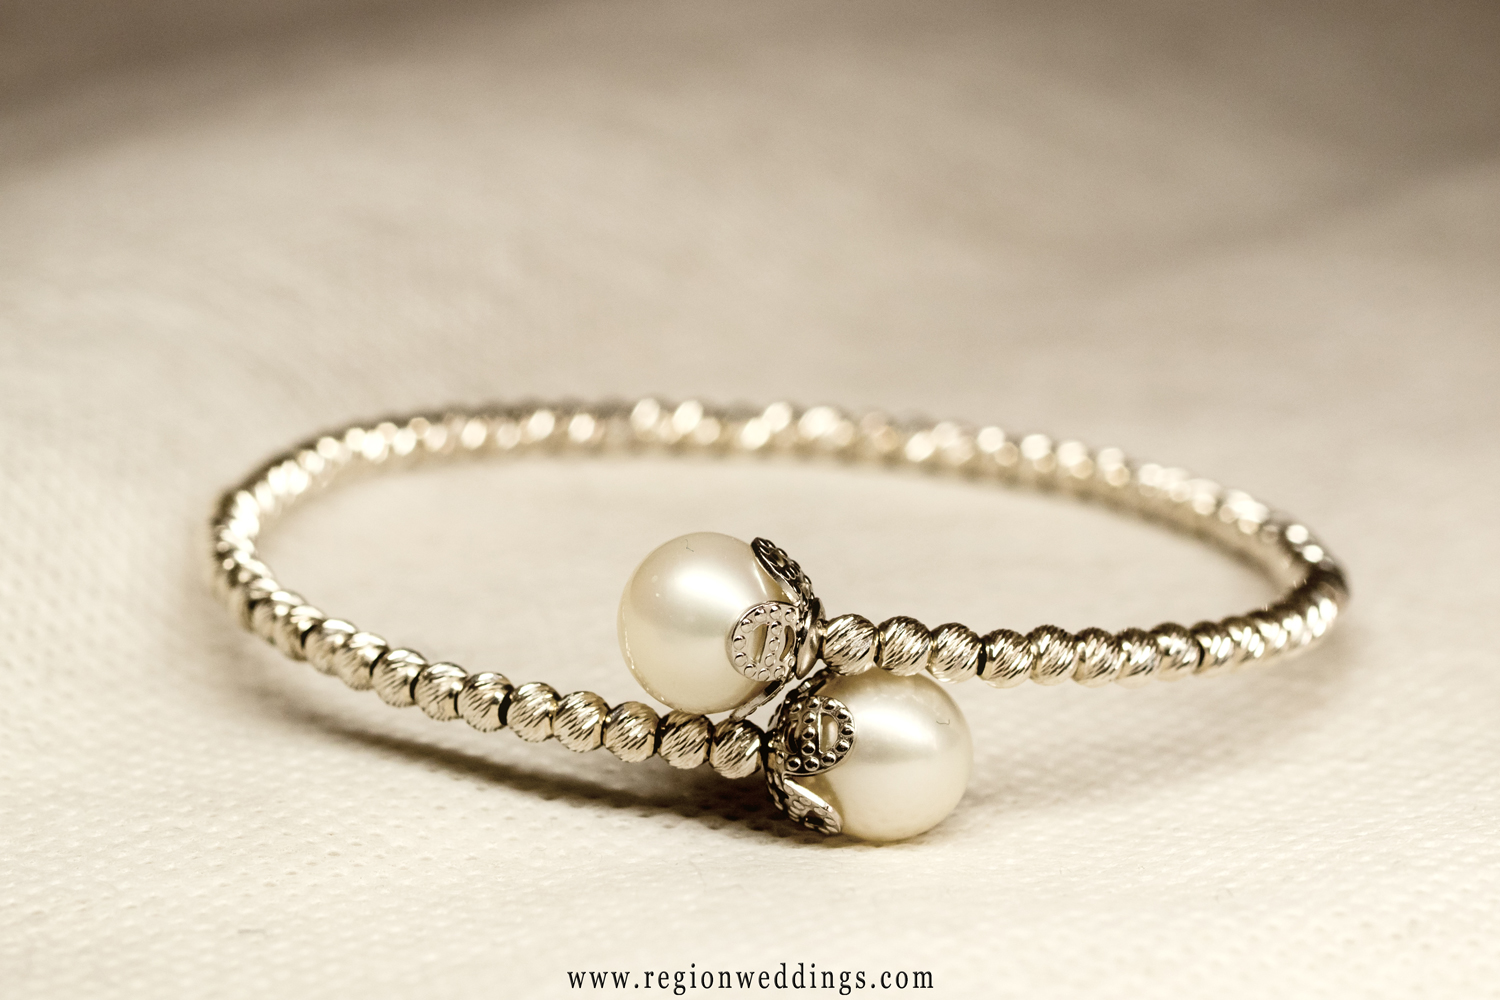 The bride's bracelet shown in a sepia toned wedding photo.